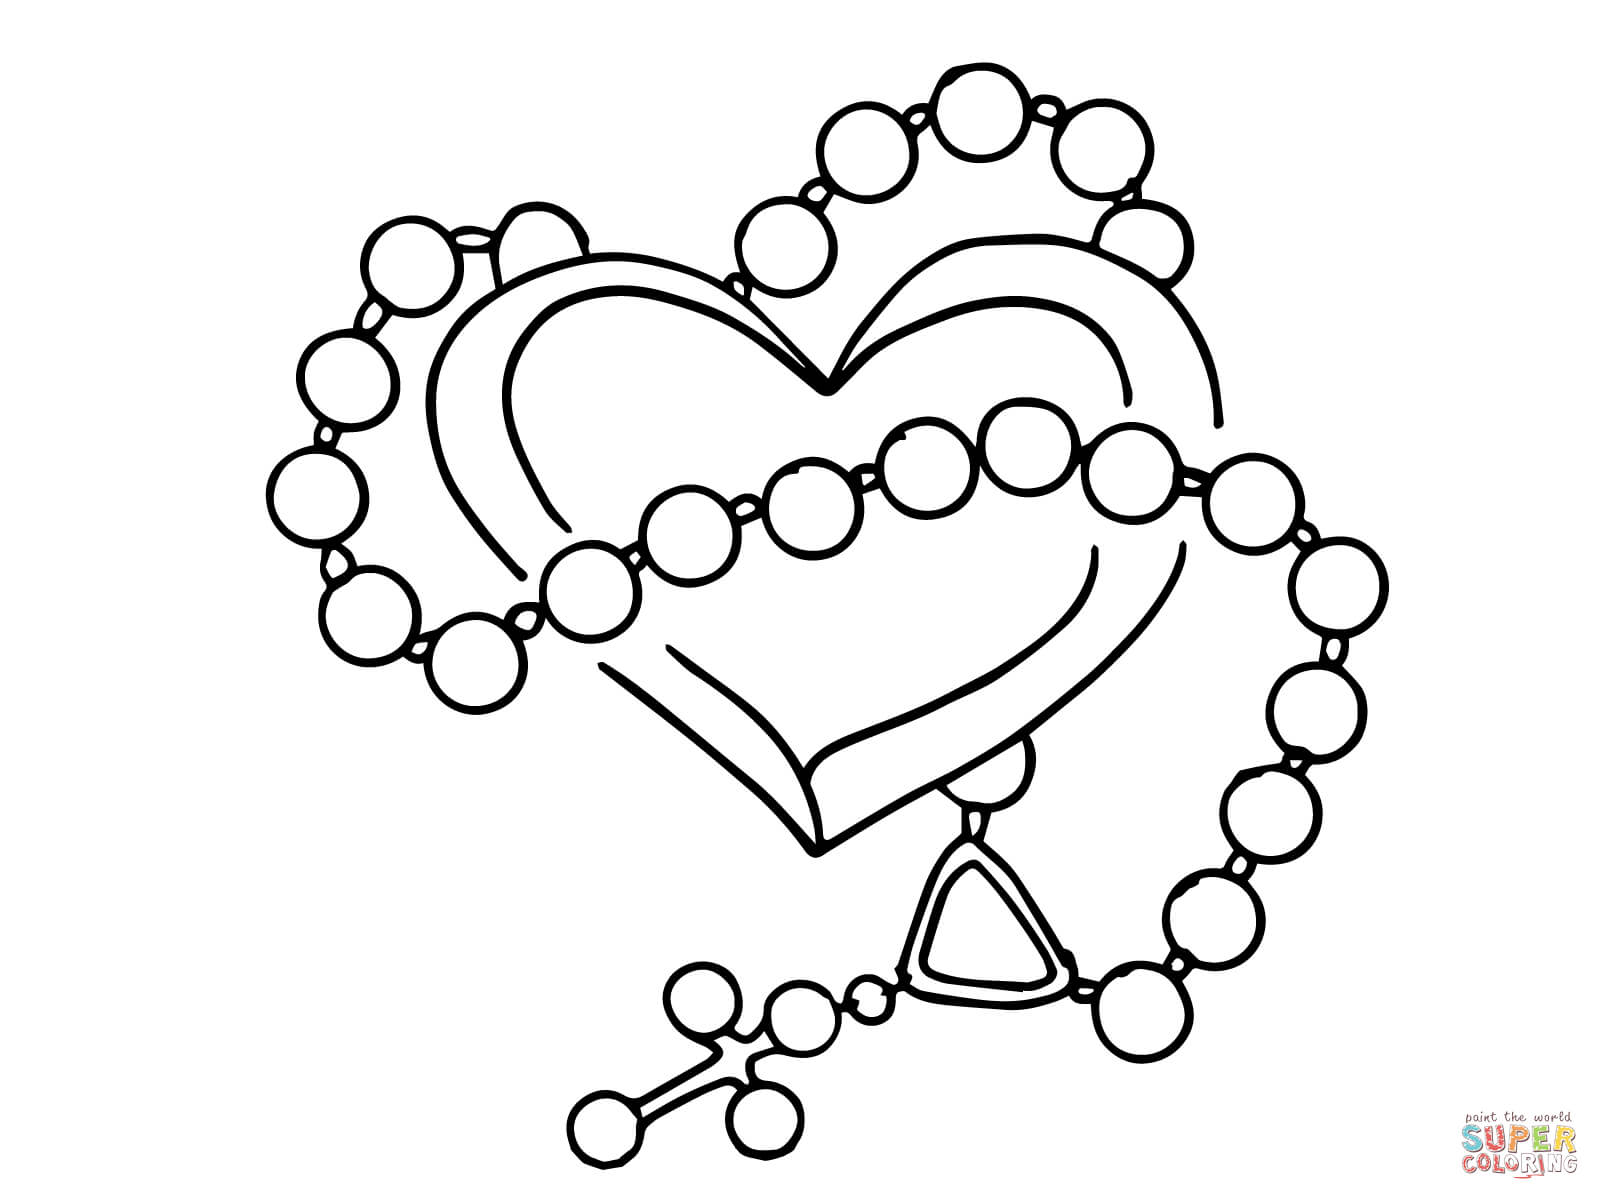 11 Pics Of Rosary Coloring Pages Beads Page